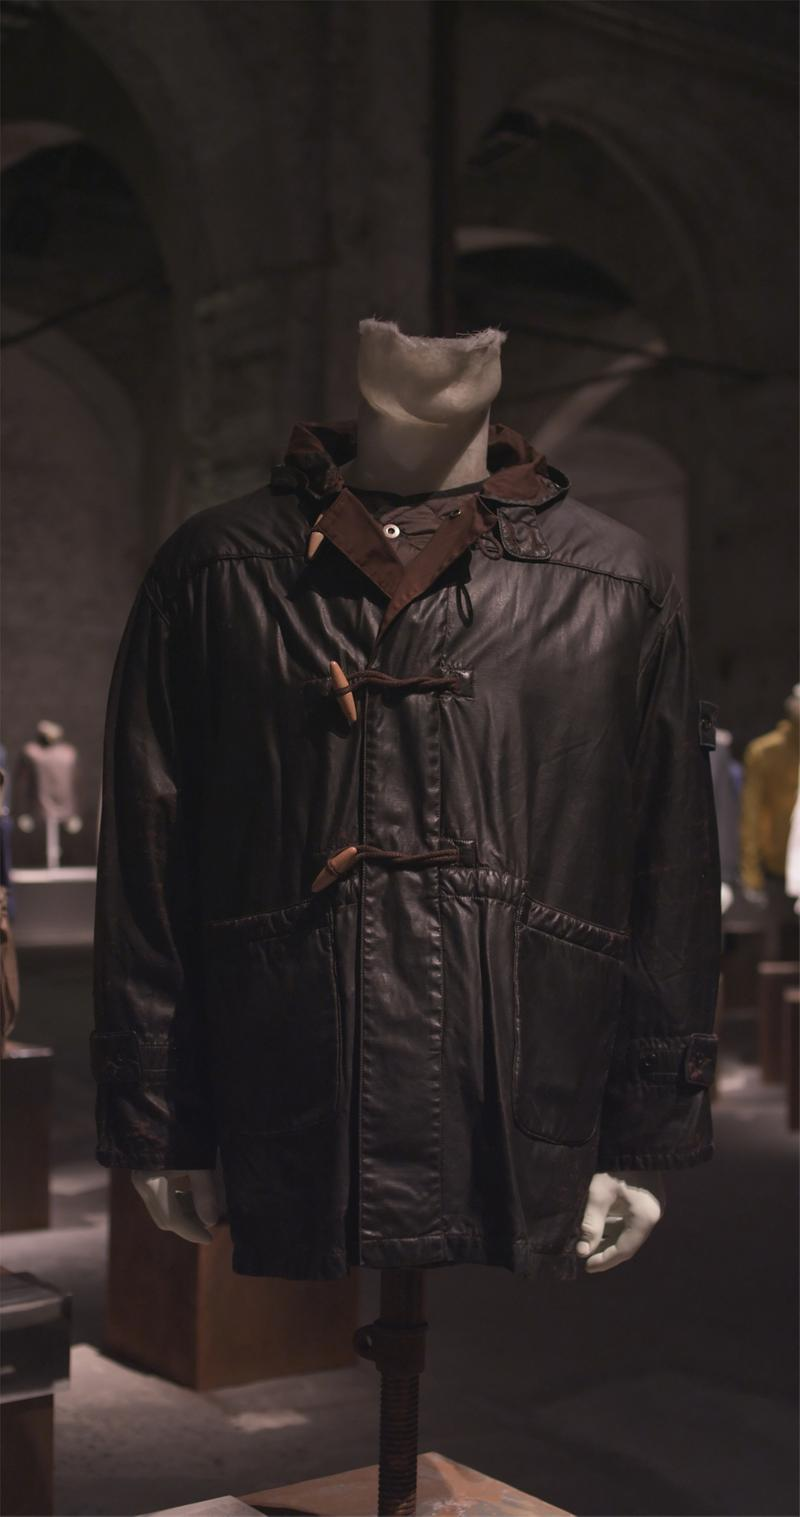 Black jacket with toggle closure and dark brown collar lining displayed on mannequin bust